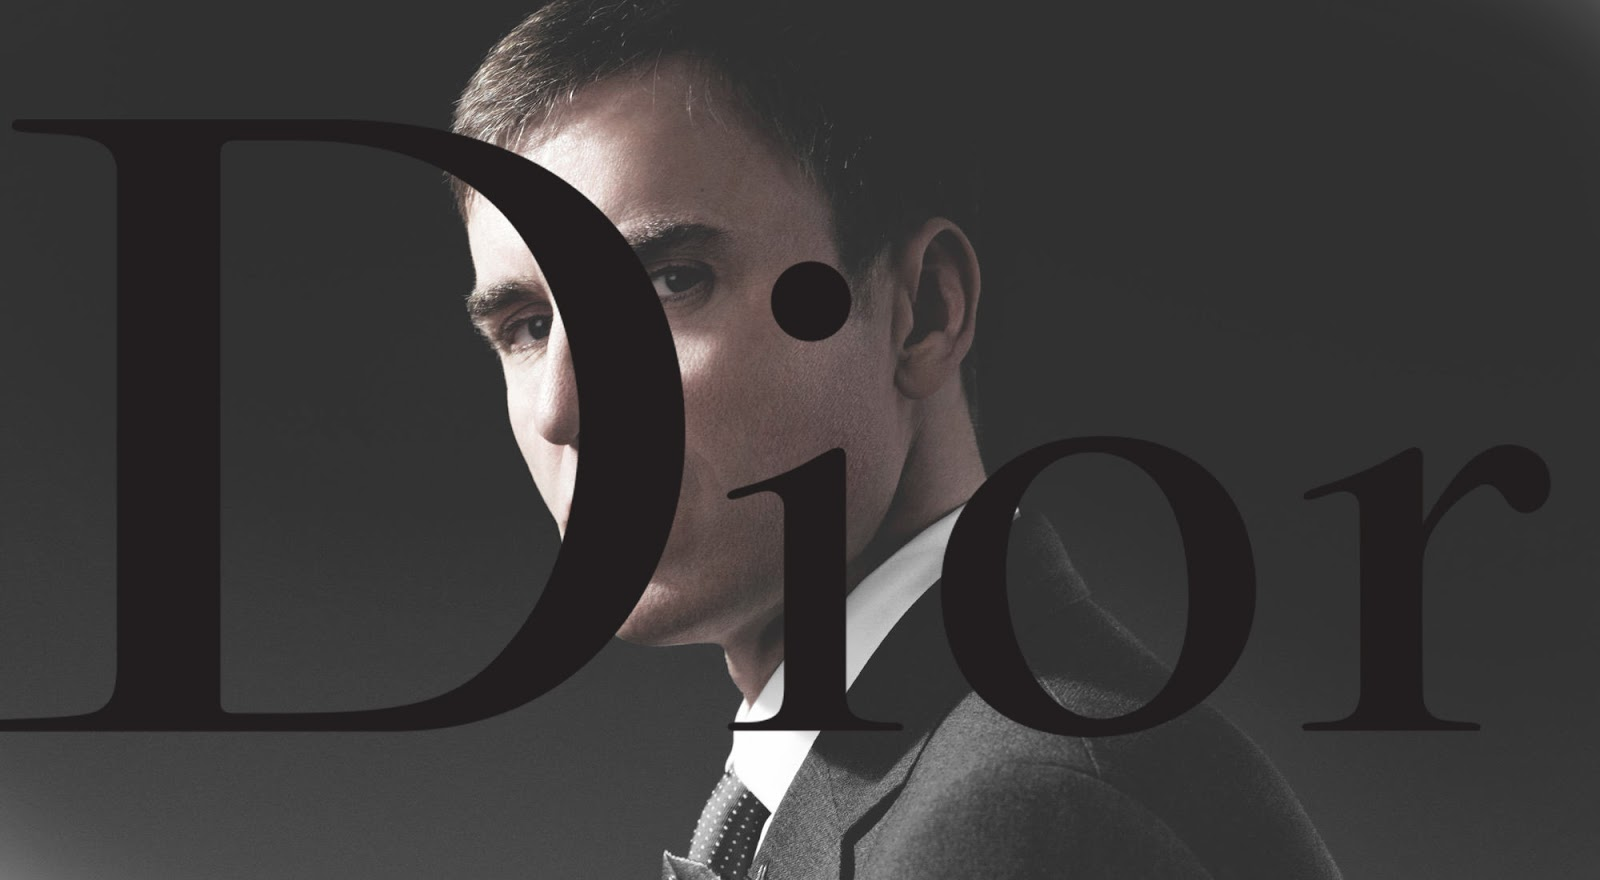 Eniwhere Fashion - News on Fashion - Raf Simons & Dior